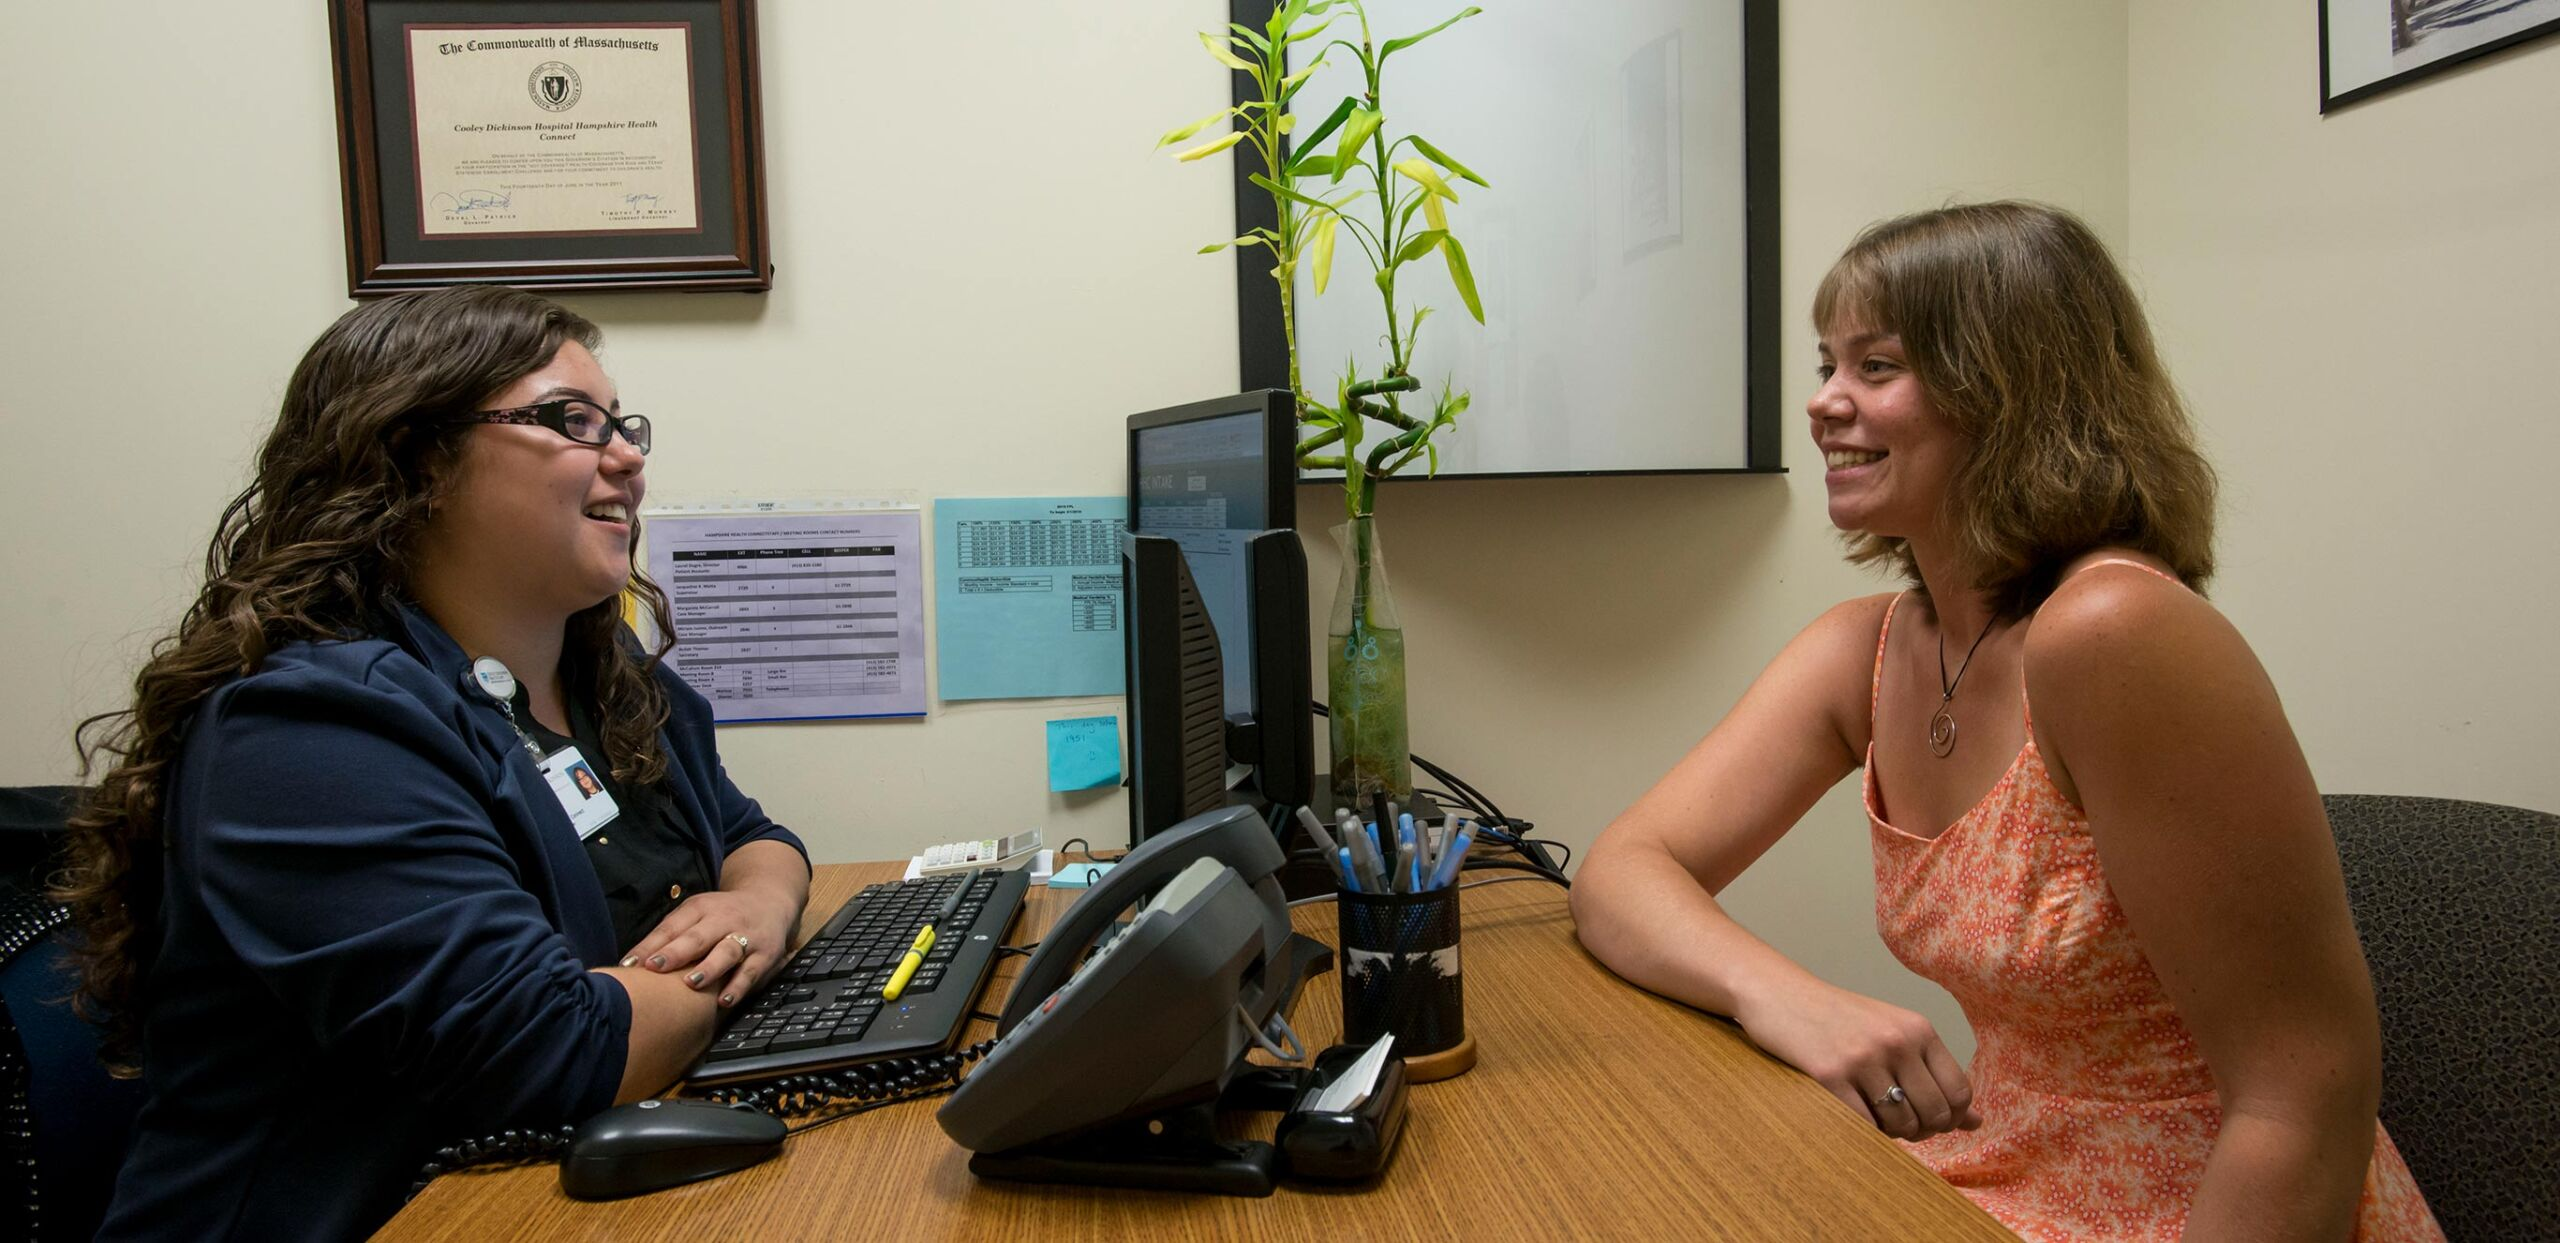 Female financial counselor talks with client in the Hampshire Health Connect office, Cooley Dickinson Hospital, Northampton, MA 01060